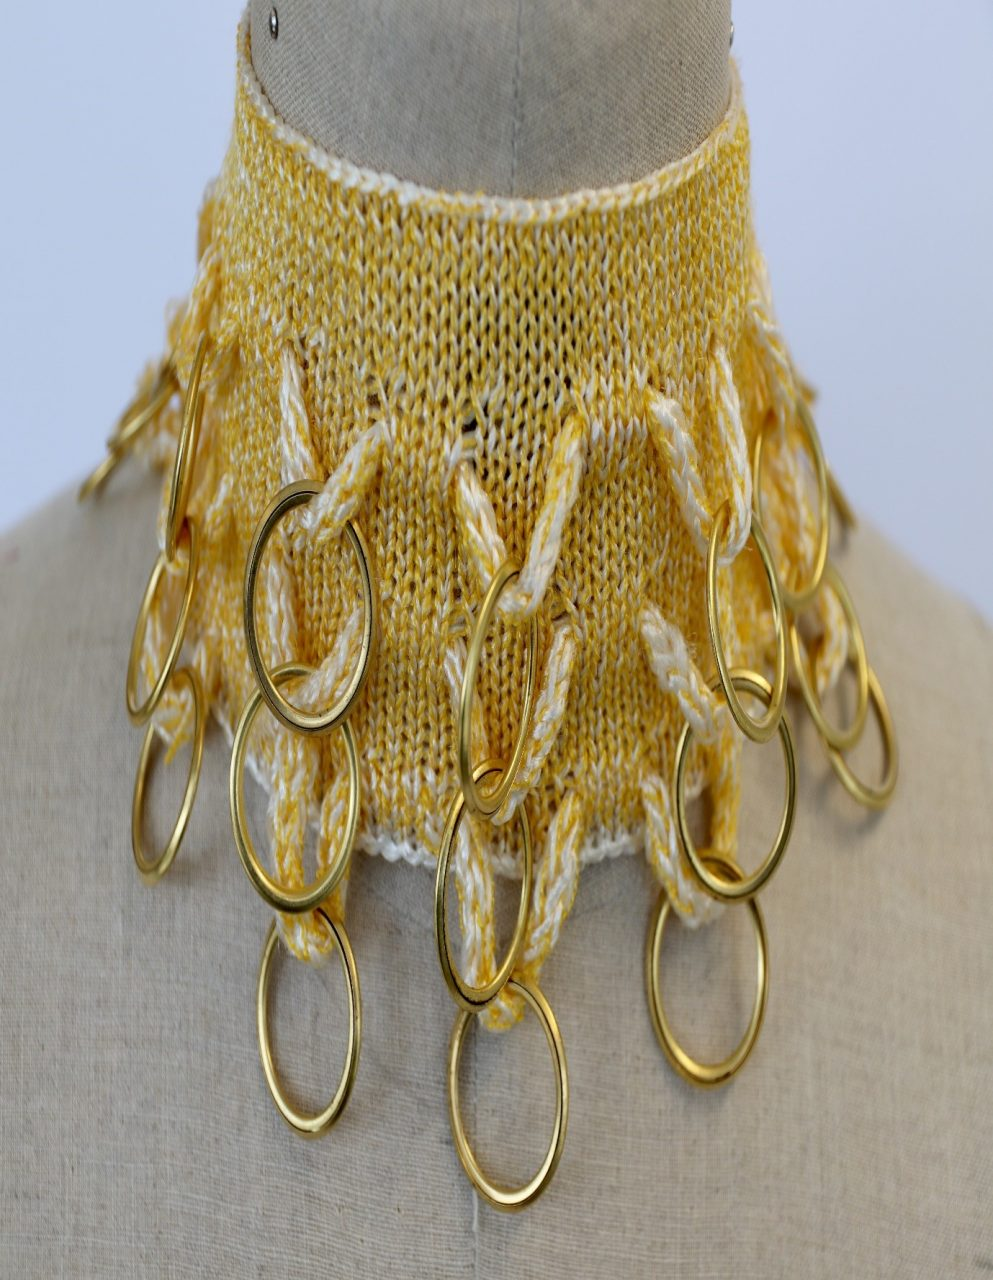 Looped knitted choker